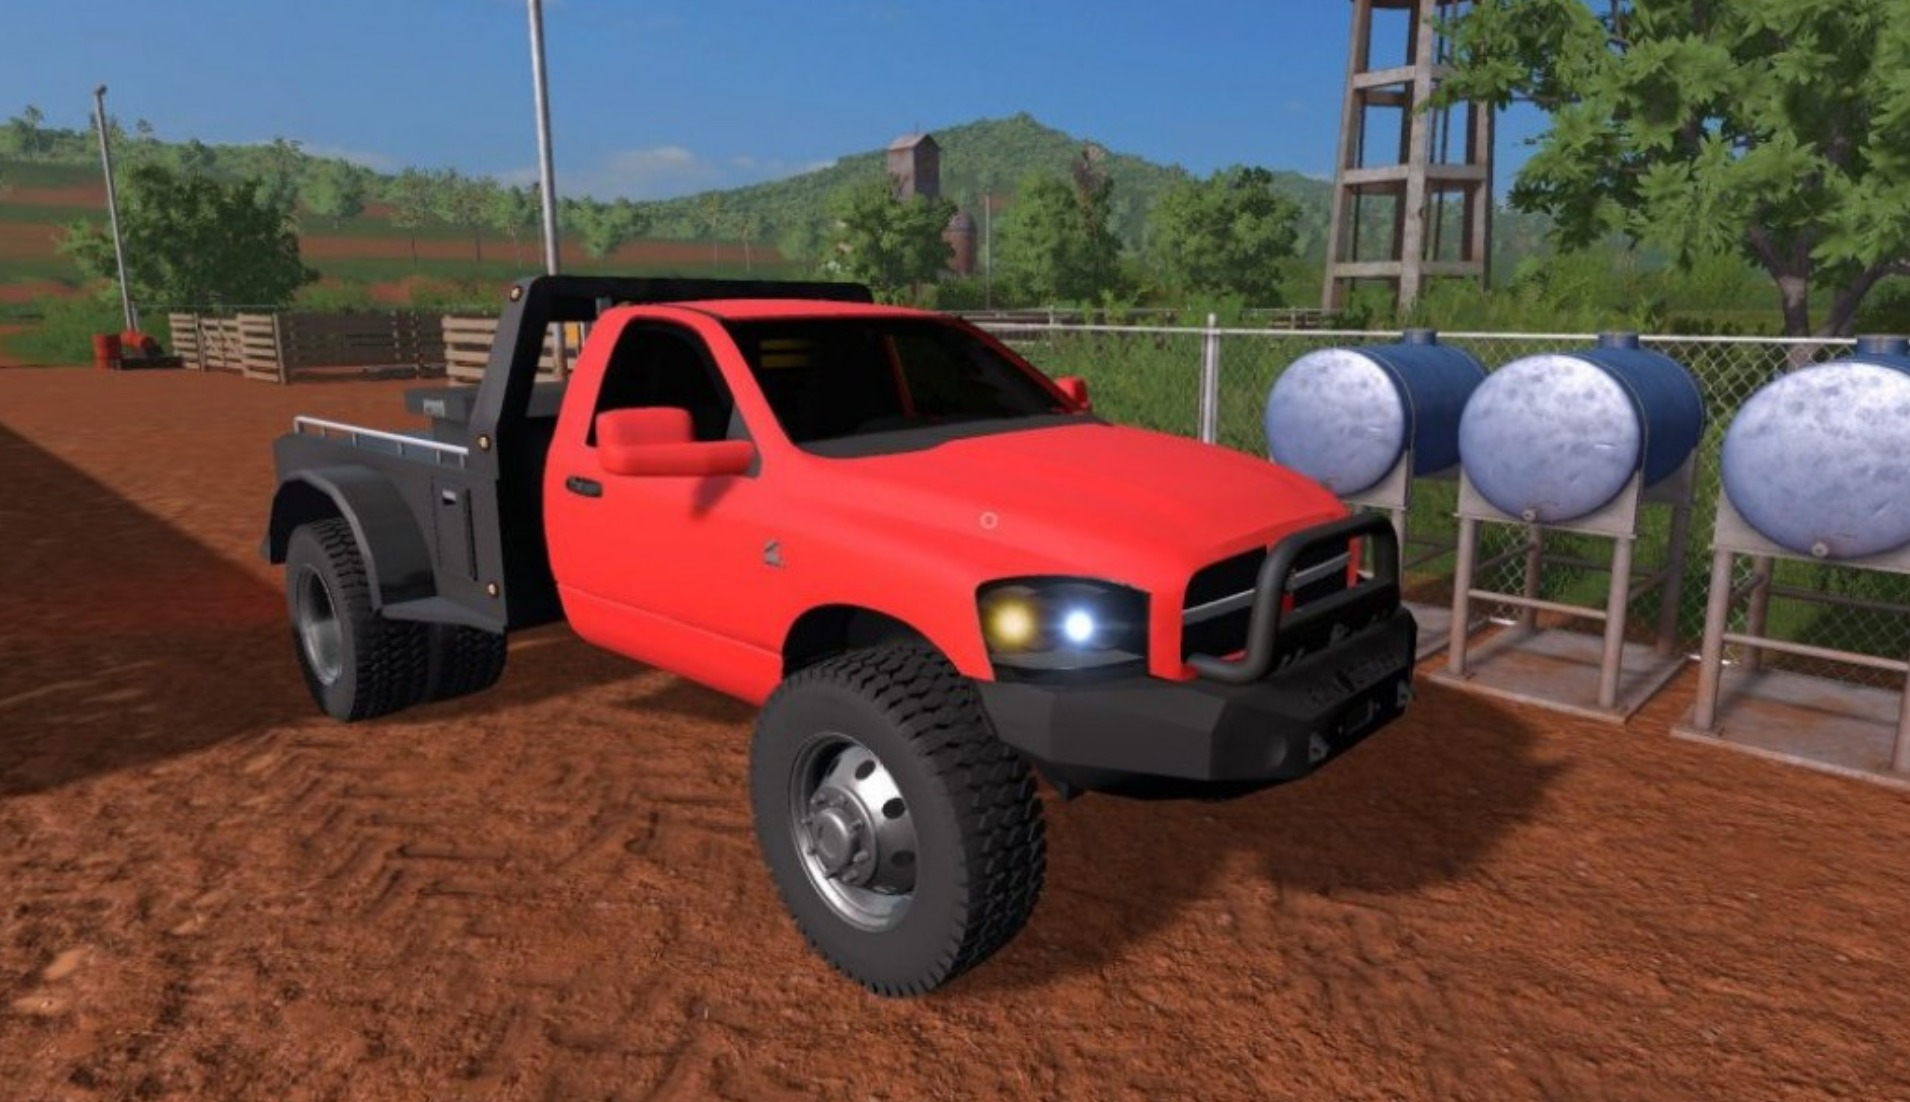 2008 Dodge Ram Flatbed v 1 0 FS17 - Farming simulator 17